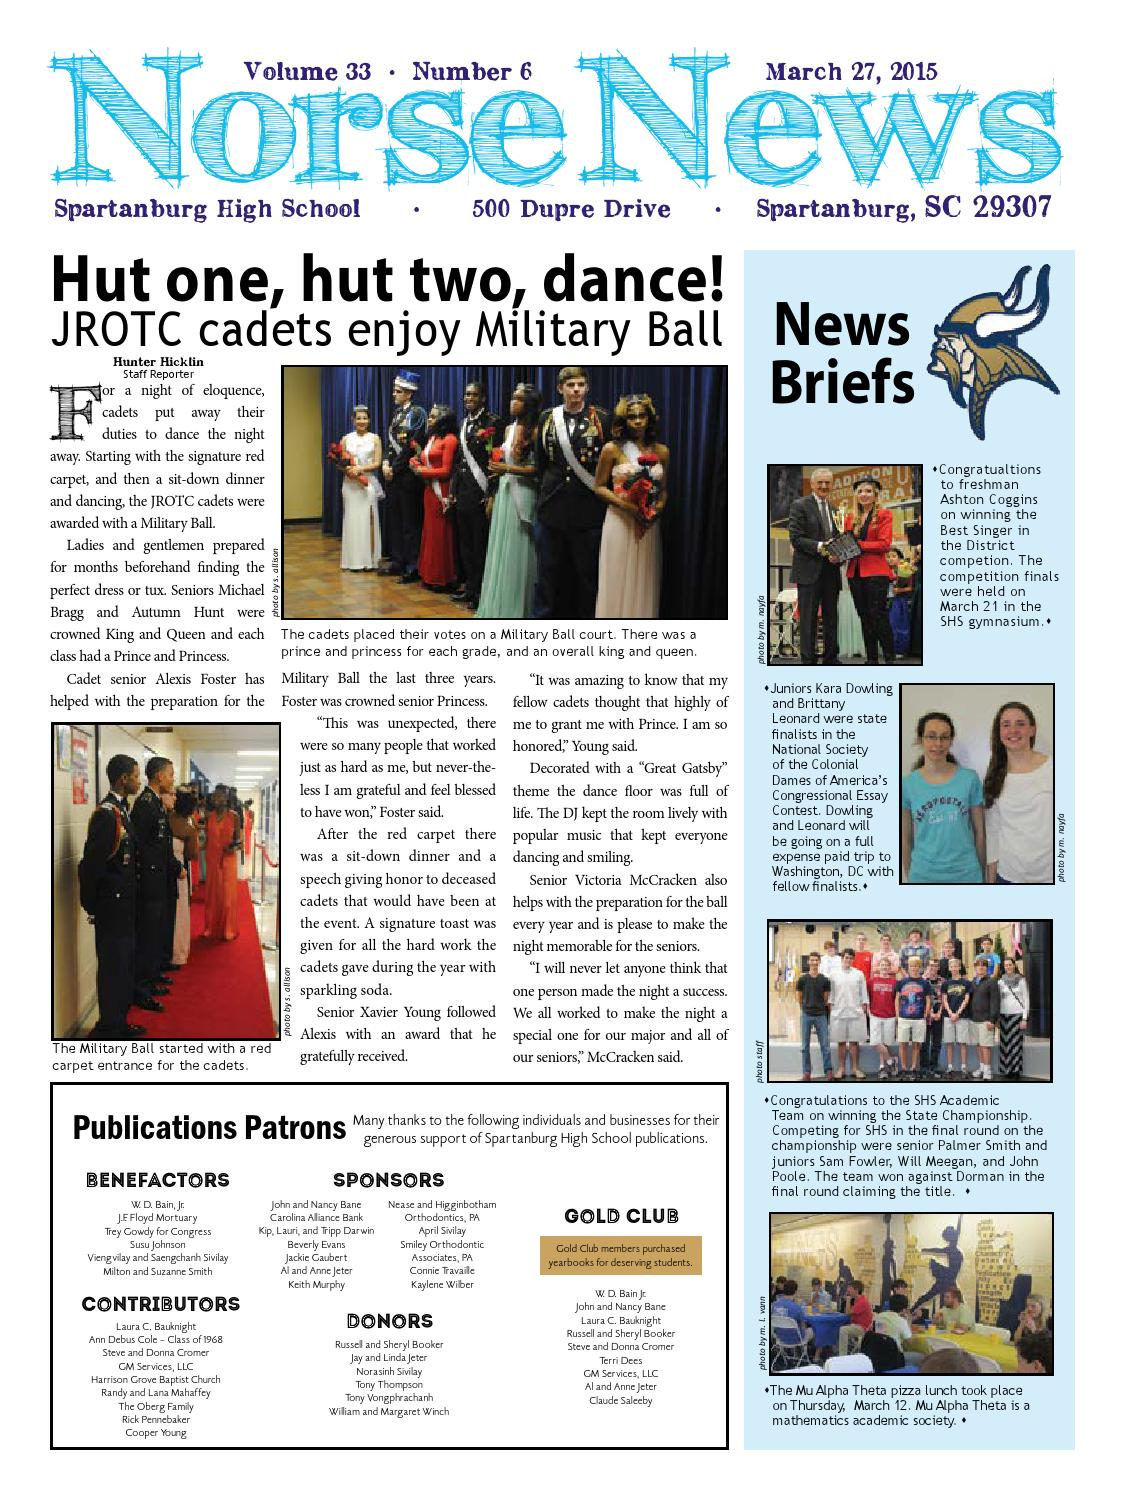 Norse News Apr 2015 by Lisa McCulley - issuu